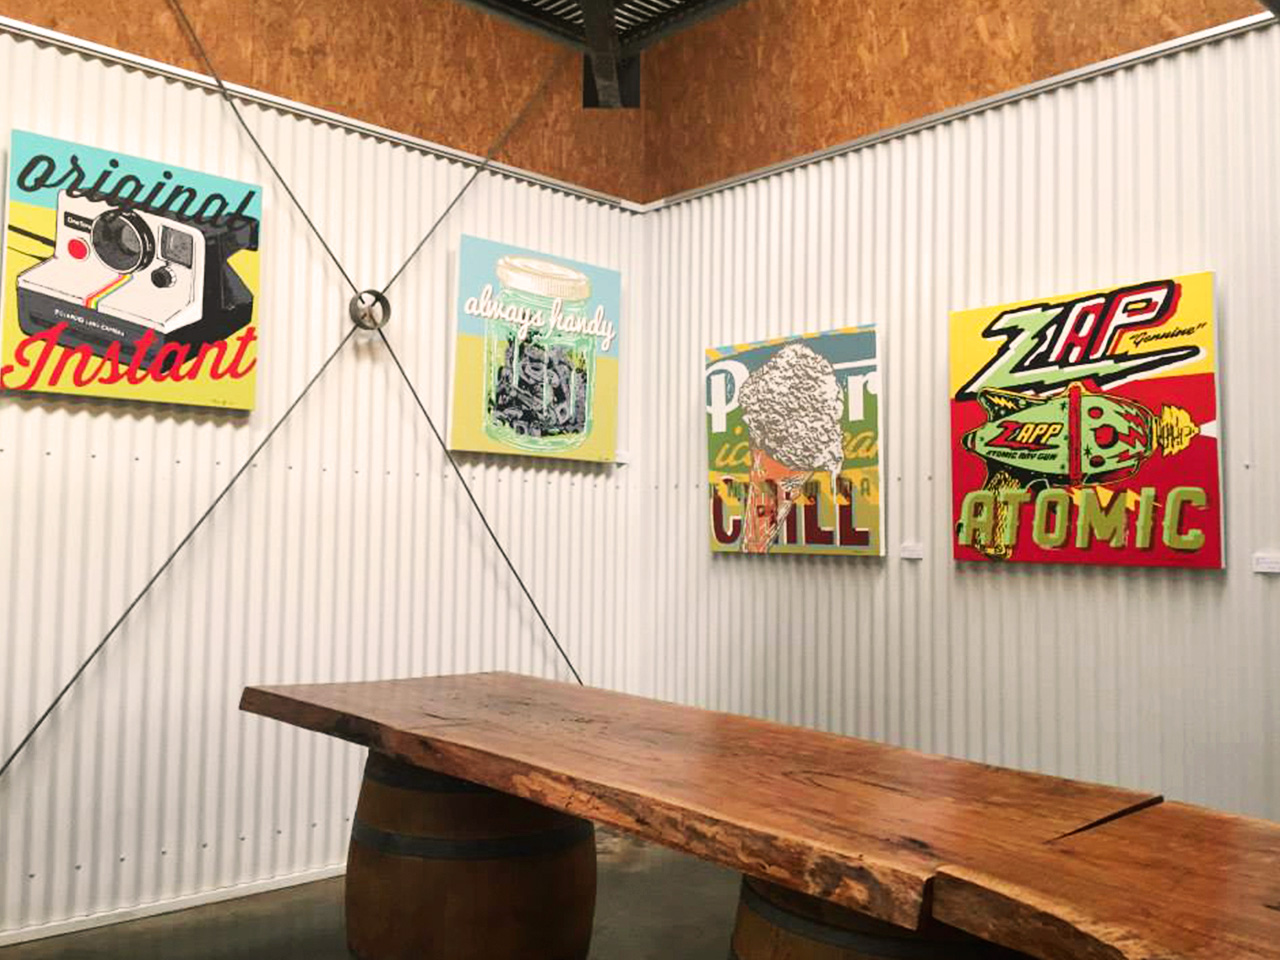 Wooden Table Inside The Function Room With Wall Arts